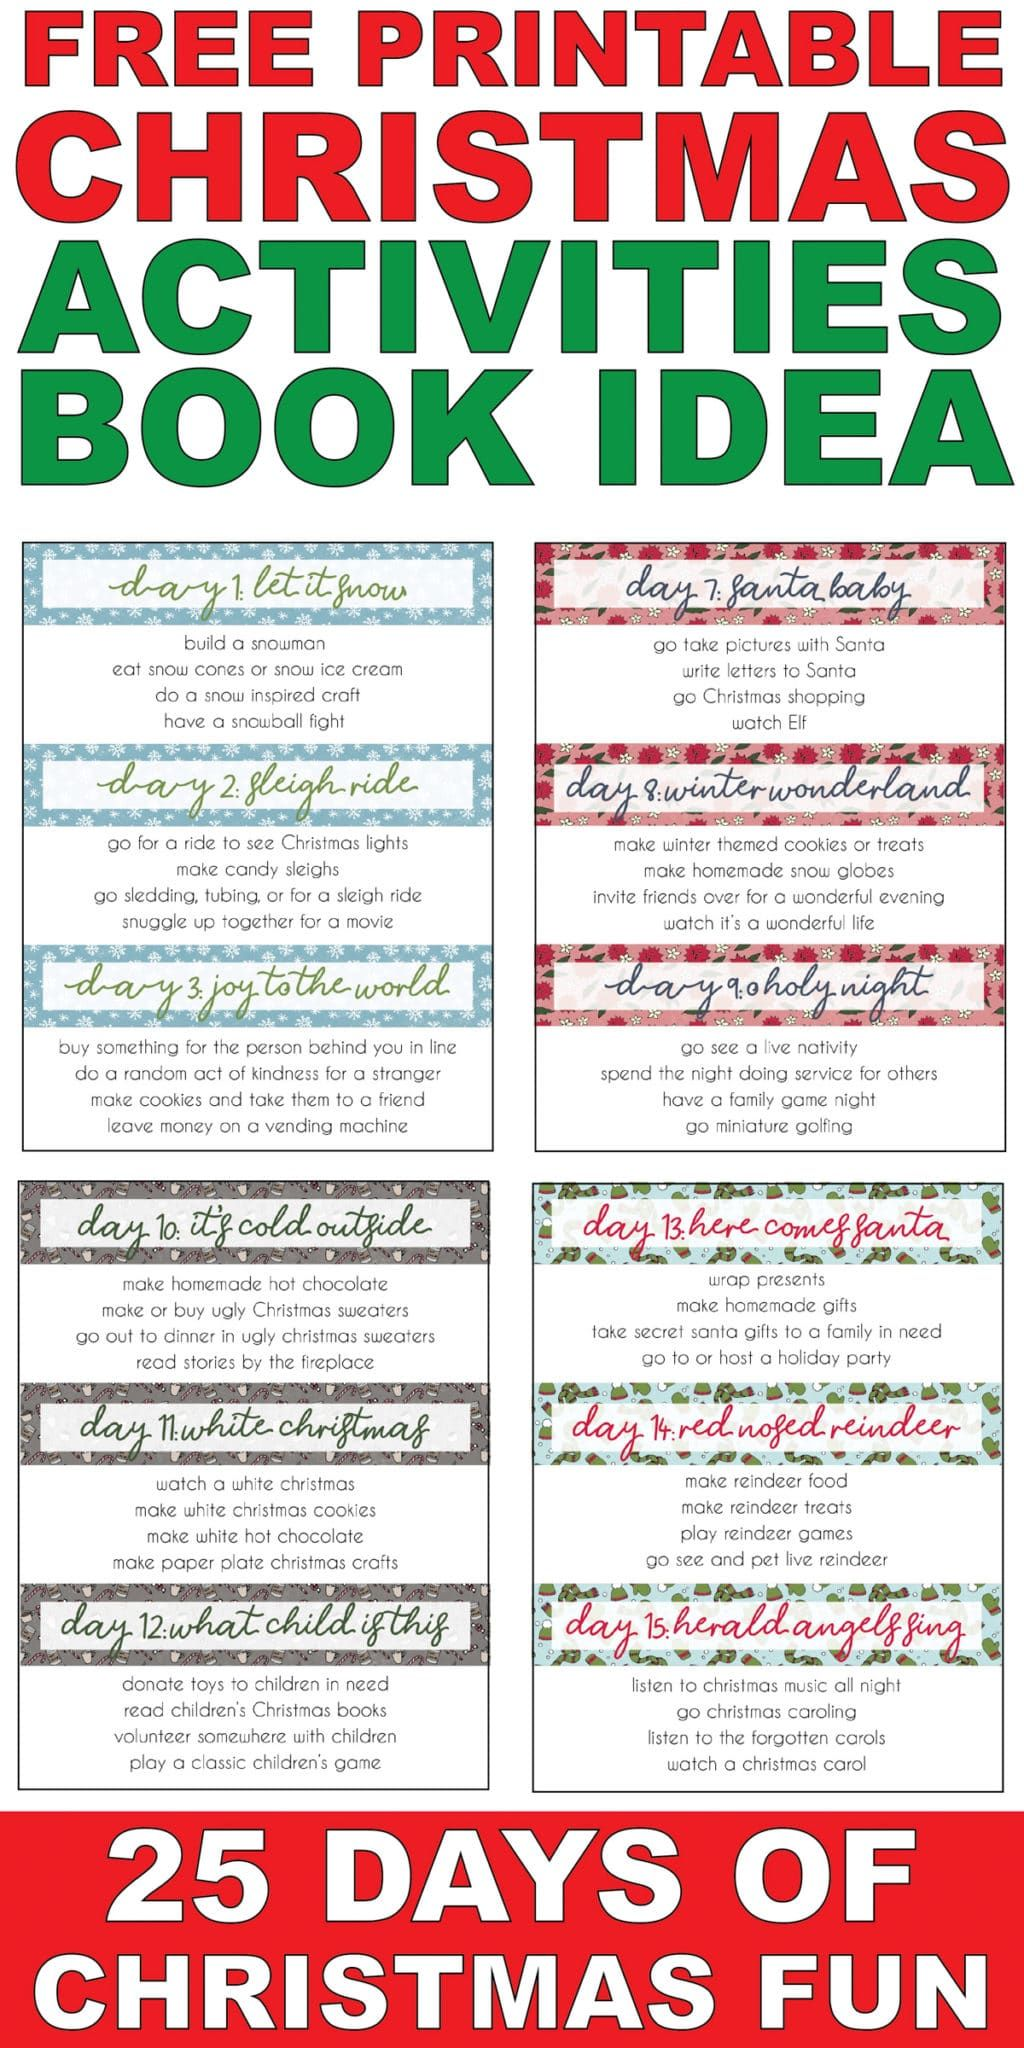 100 Fun Christmas Activities For All Ages Free Printable